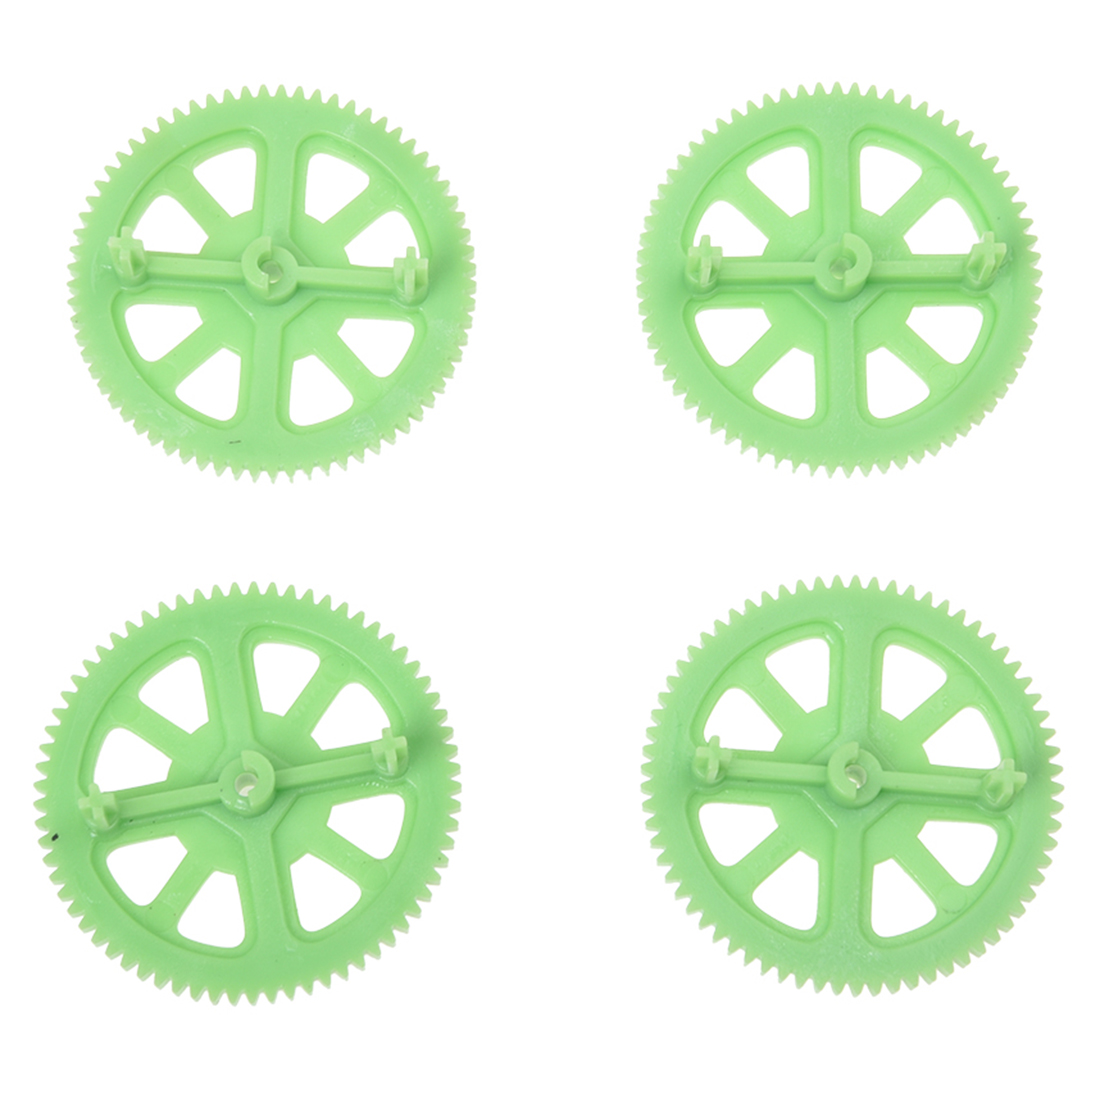 Motor Pinion Gears ,Shaft Clips Set Pieces for AR Drone 2.0 (Green)